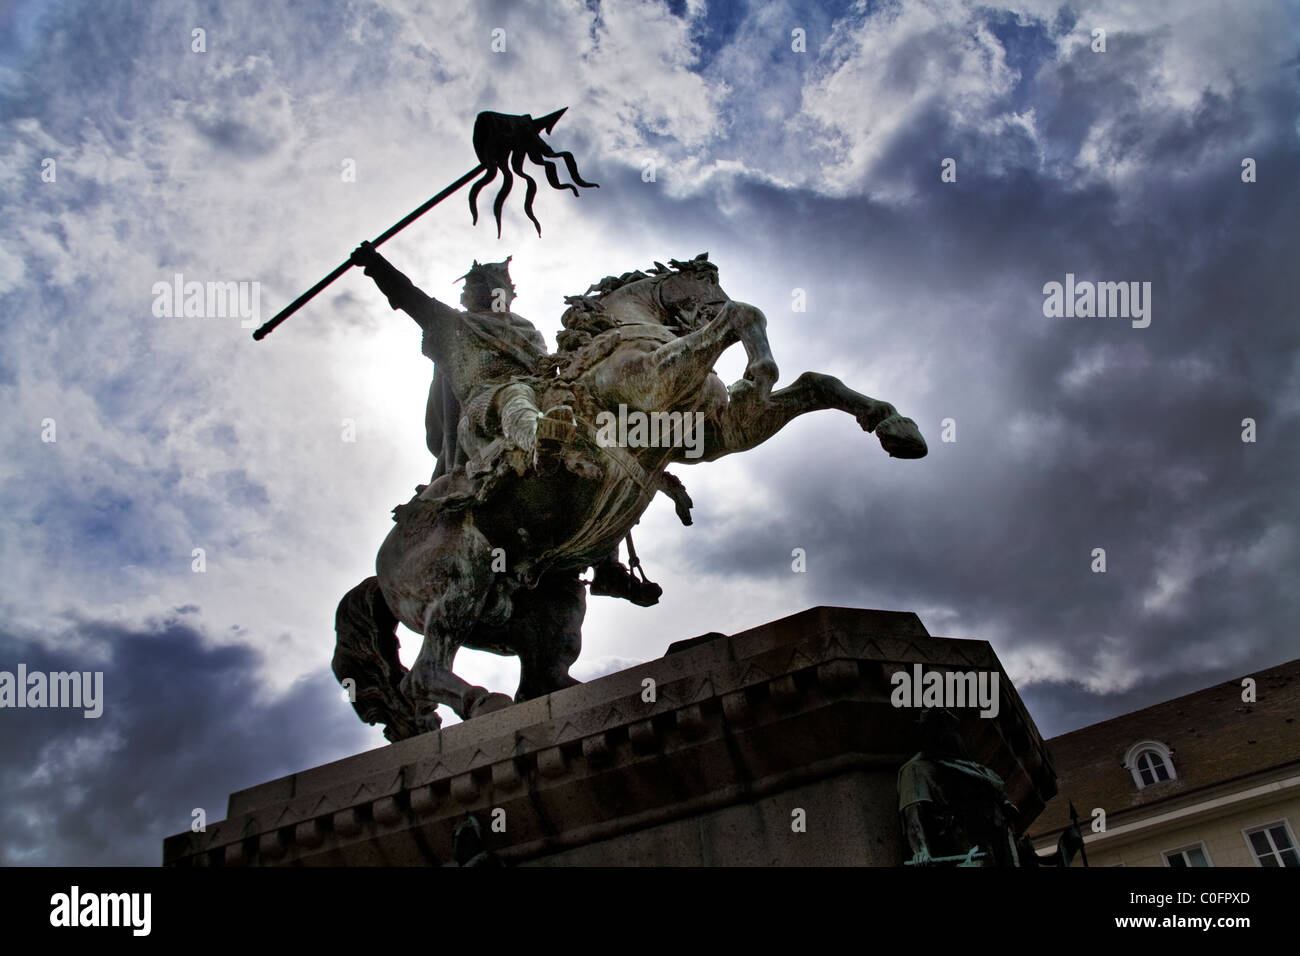 Statue of William the Conqueror in Falaise, northern France Stock Photo